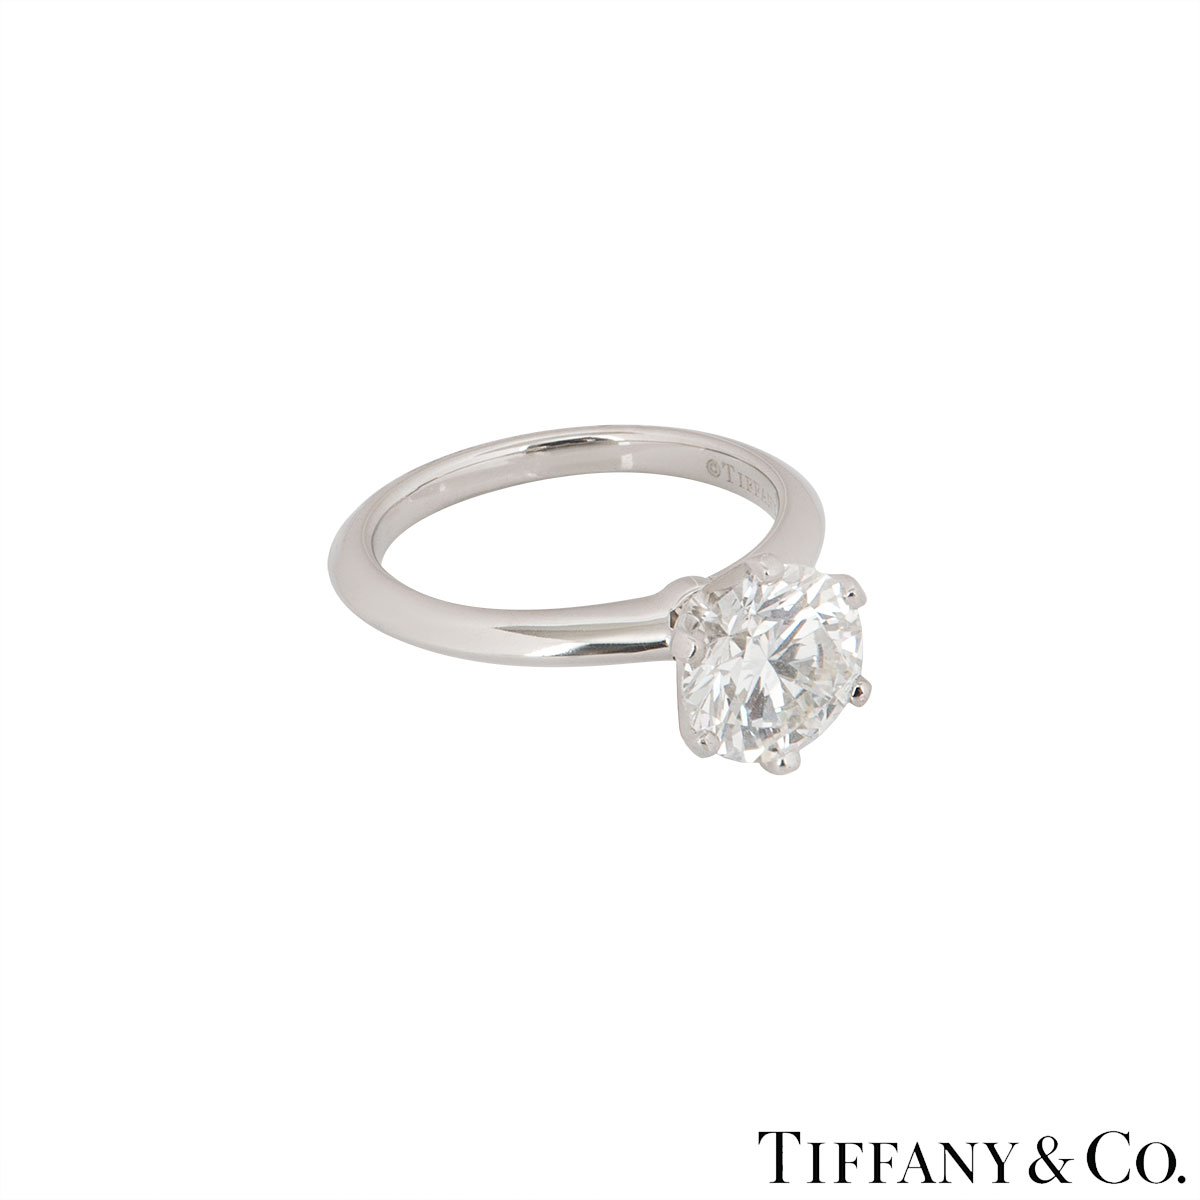 Tiffany & Co. Platinum Diamond Setting Ring 2.08ct I/VVS2 XXX